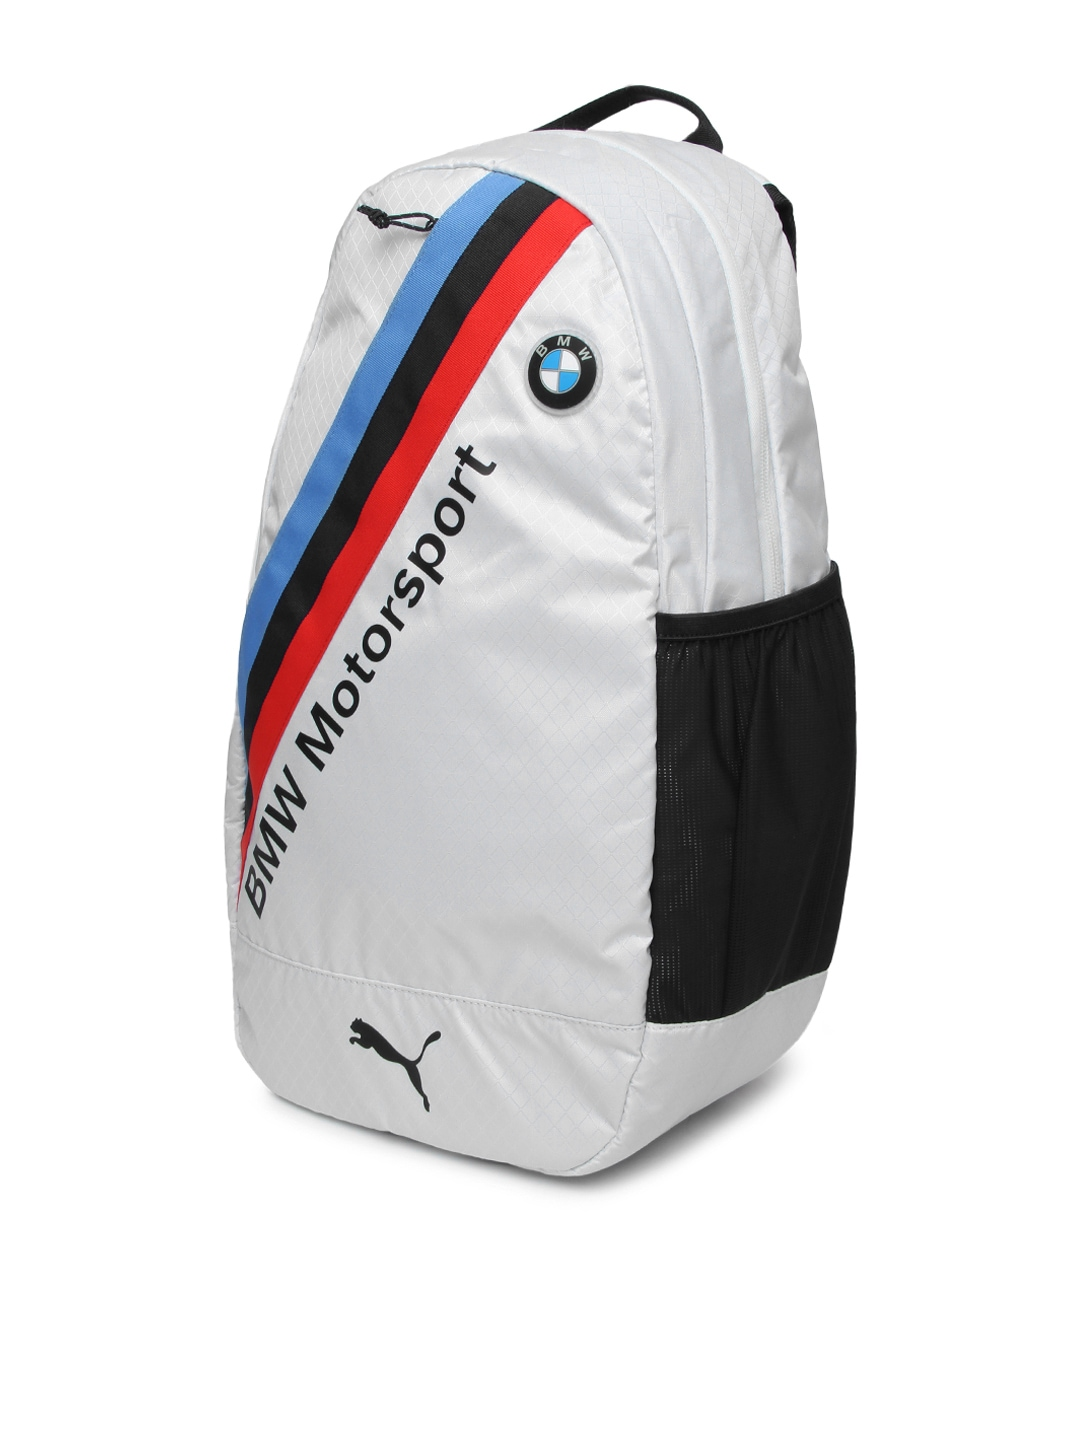 puma bmw backpack online india Sale 1668f12c70cec